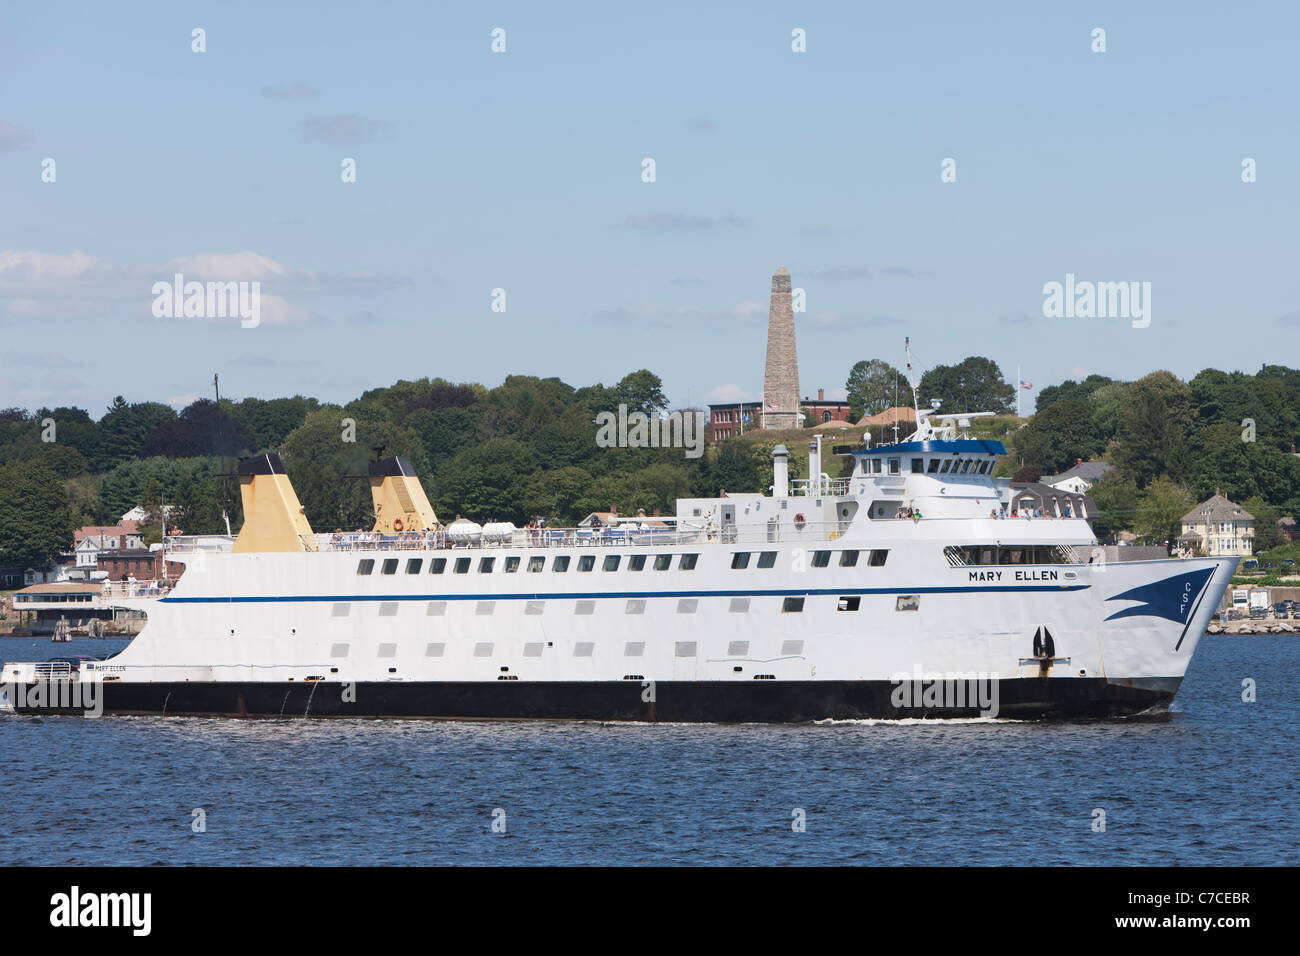 Cross Sound Ferry vessel Mary Ellen on the Thames River heading outbound from New London, Connecticut. - Stock Image